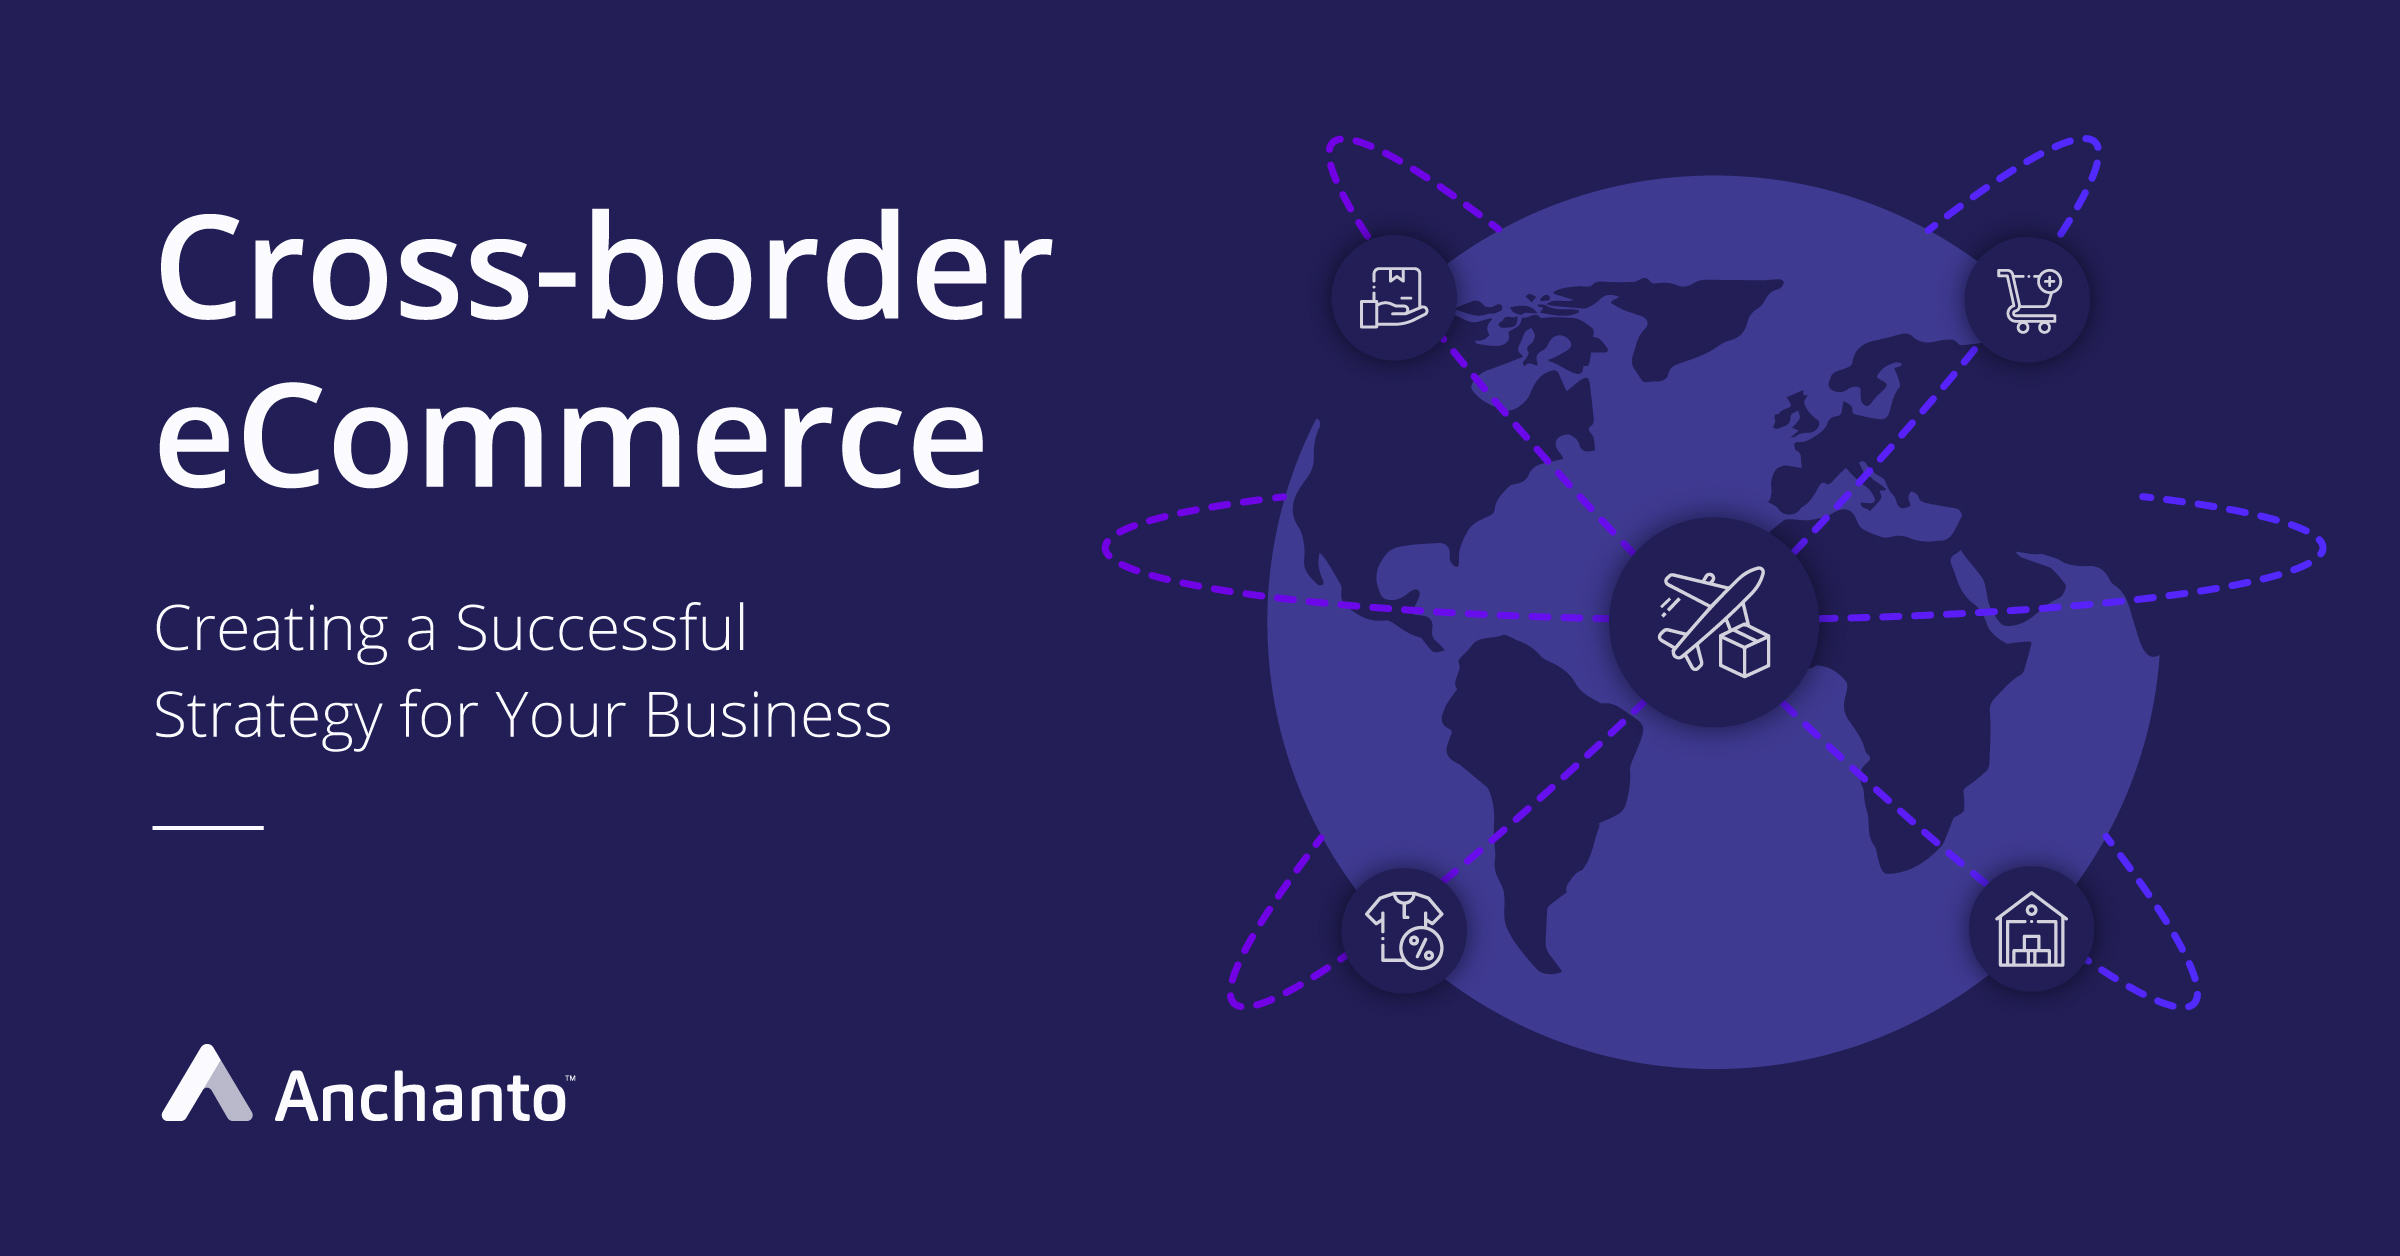 creating_a_successful_cross_border_ecommerce_strategy_for_your_business